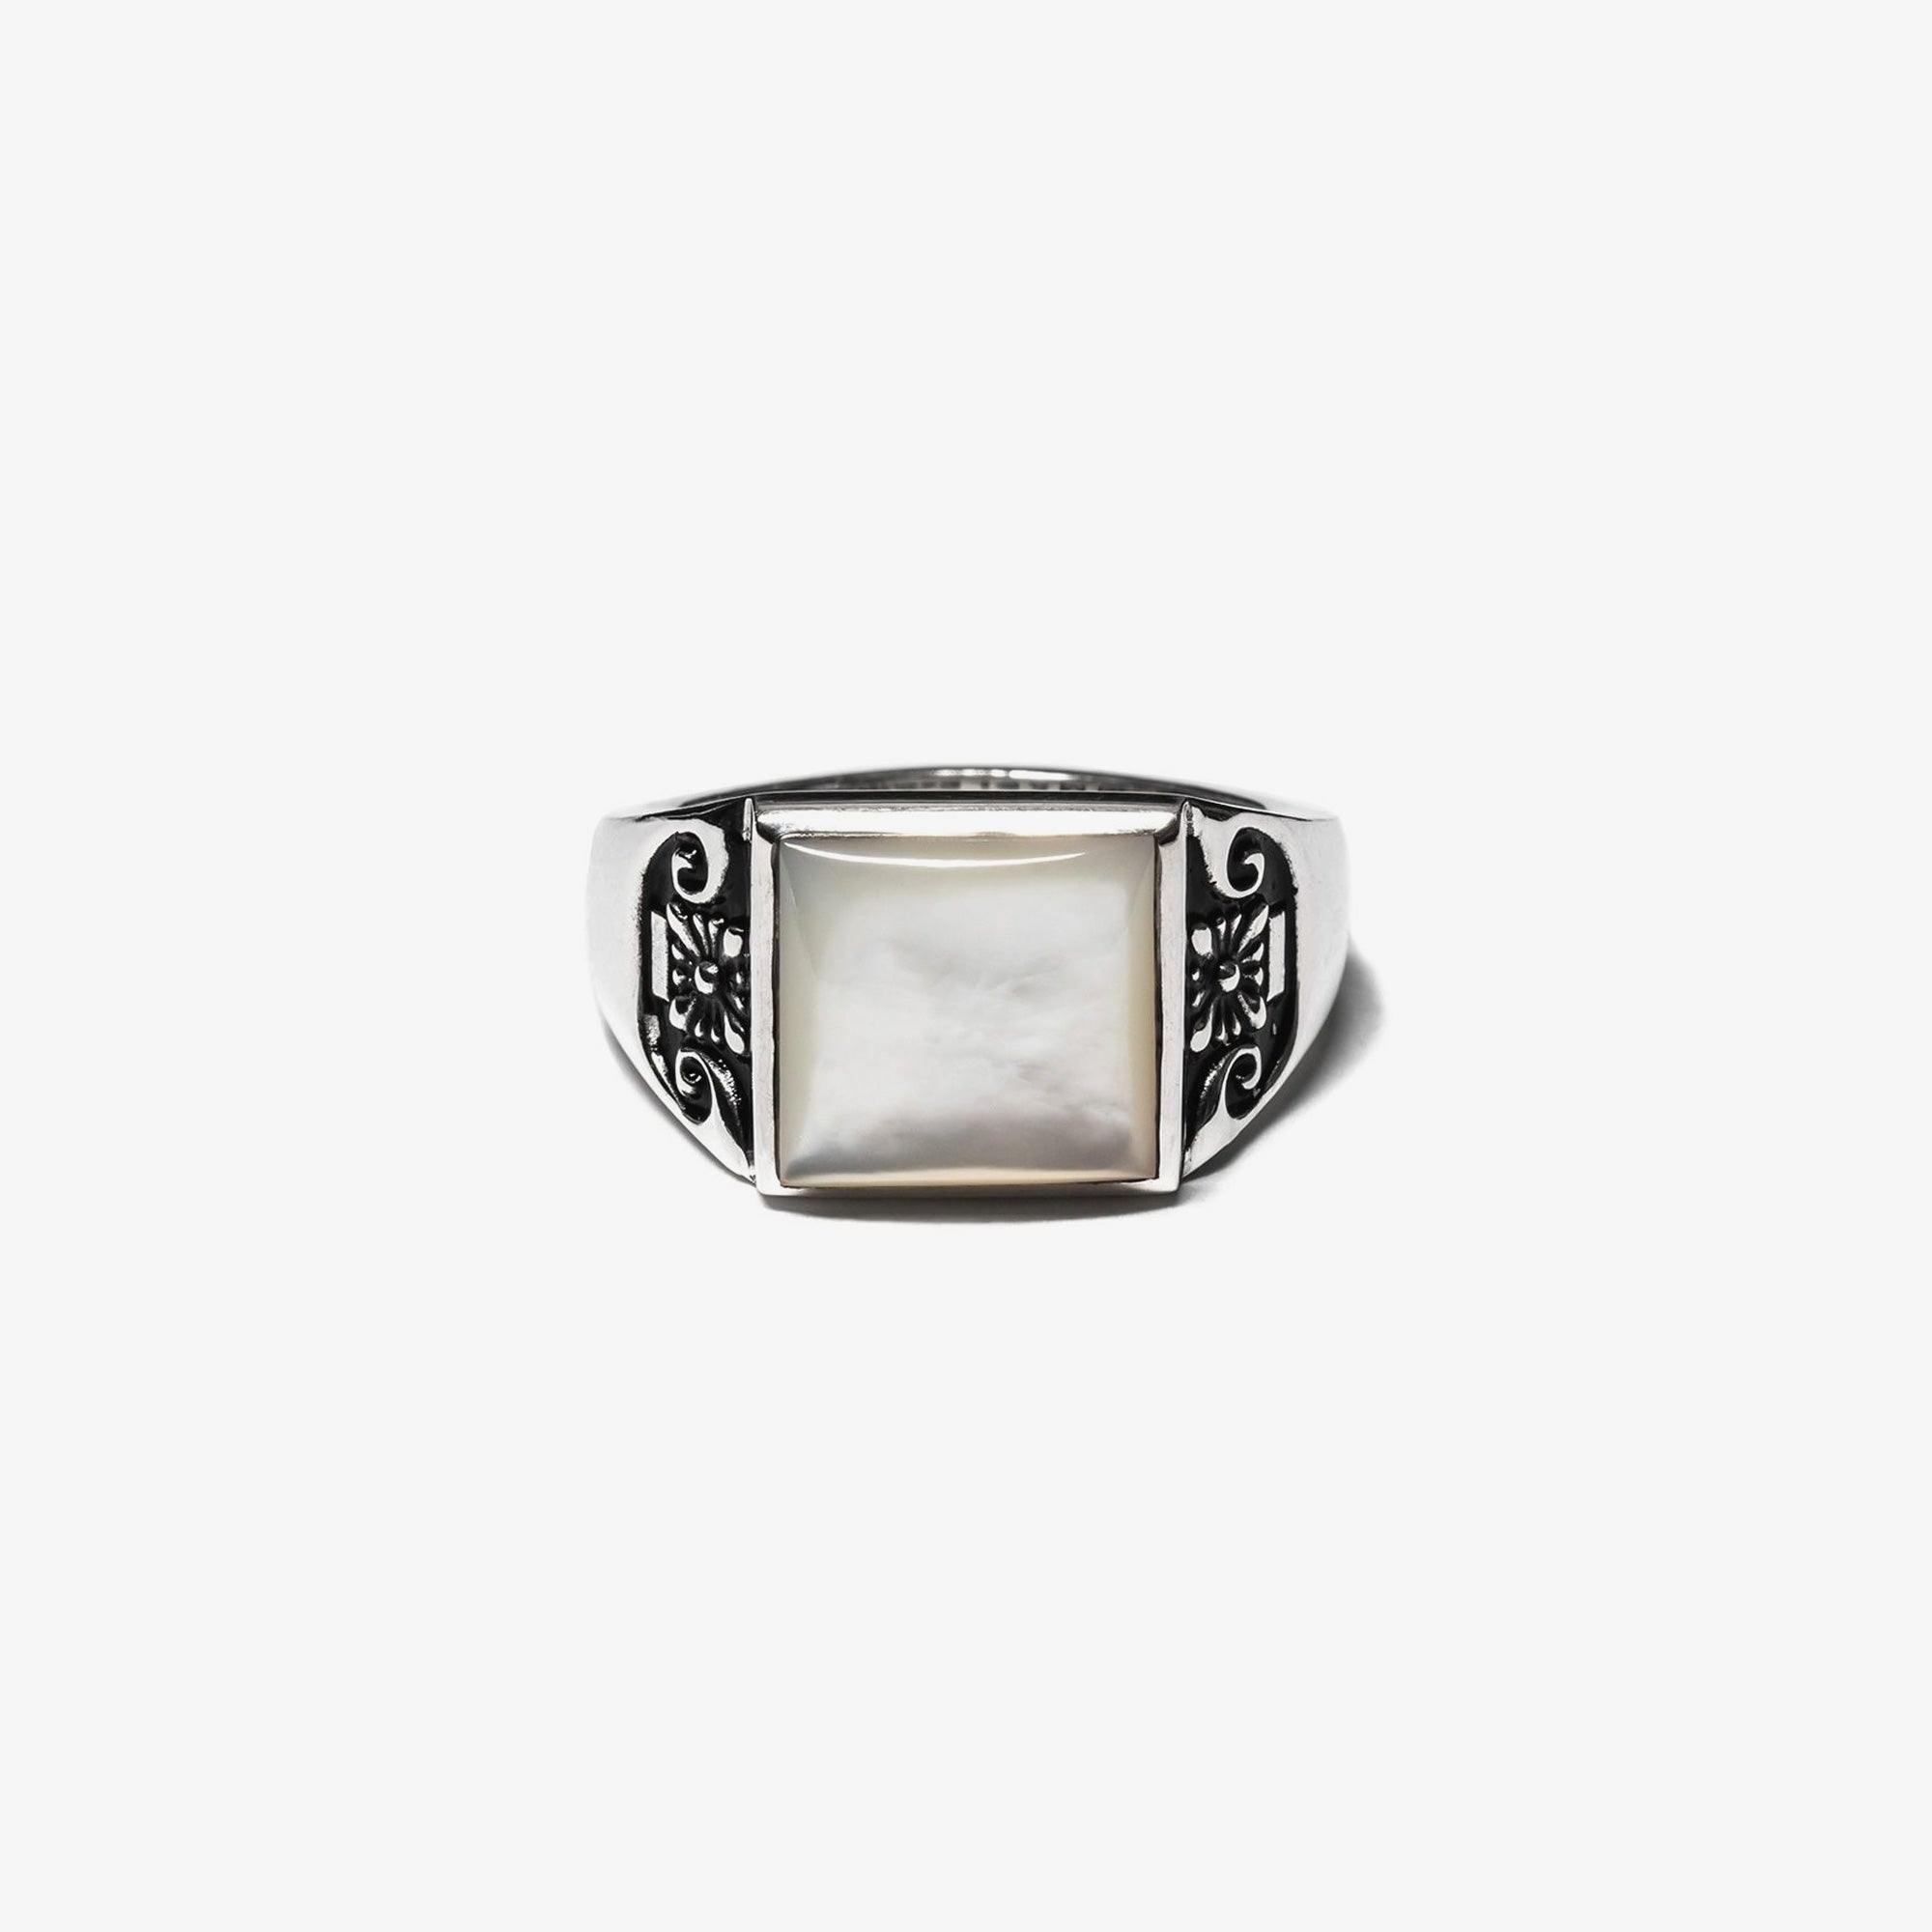 Maple Collegiate Ring Blank - Mother of Pearl / Silver 925 1